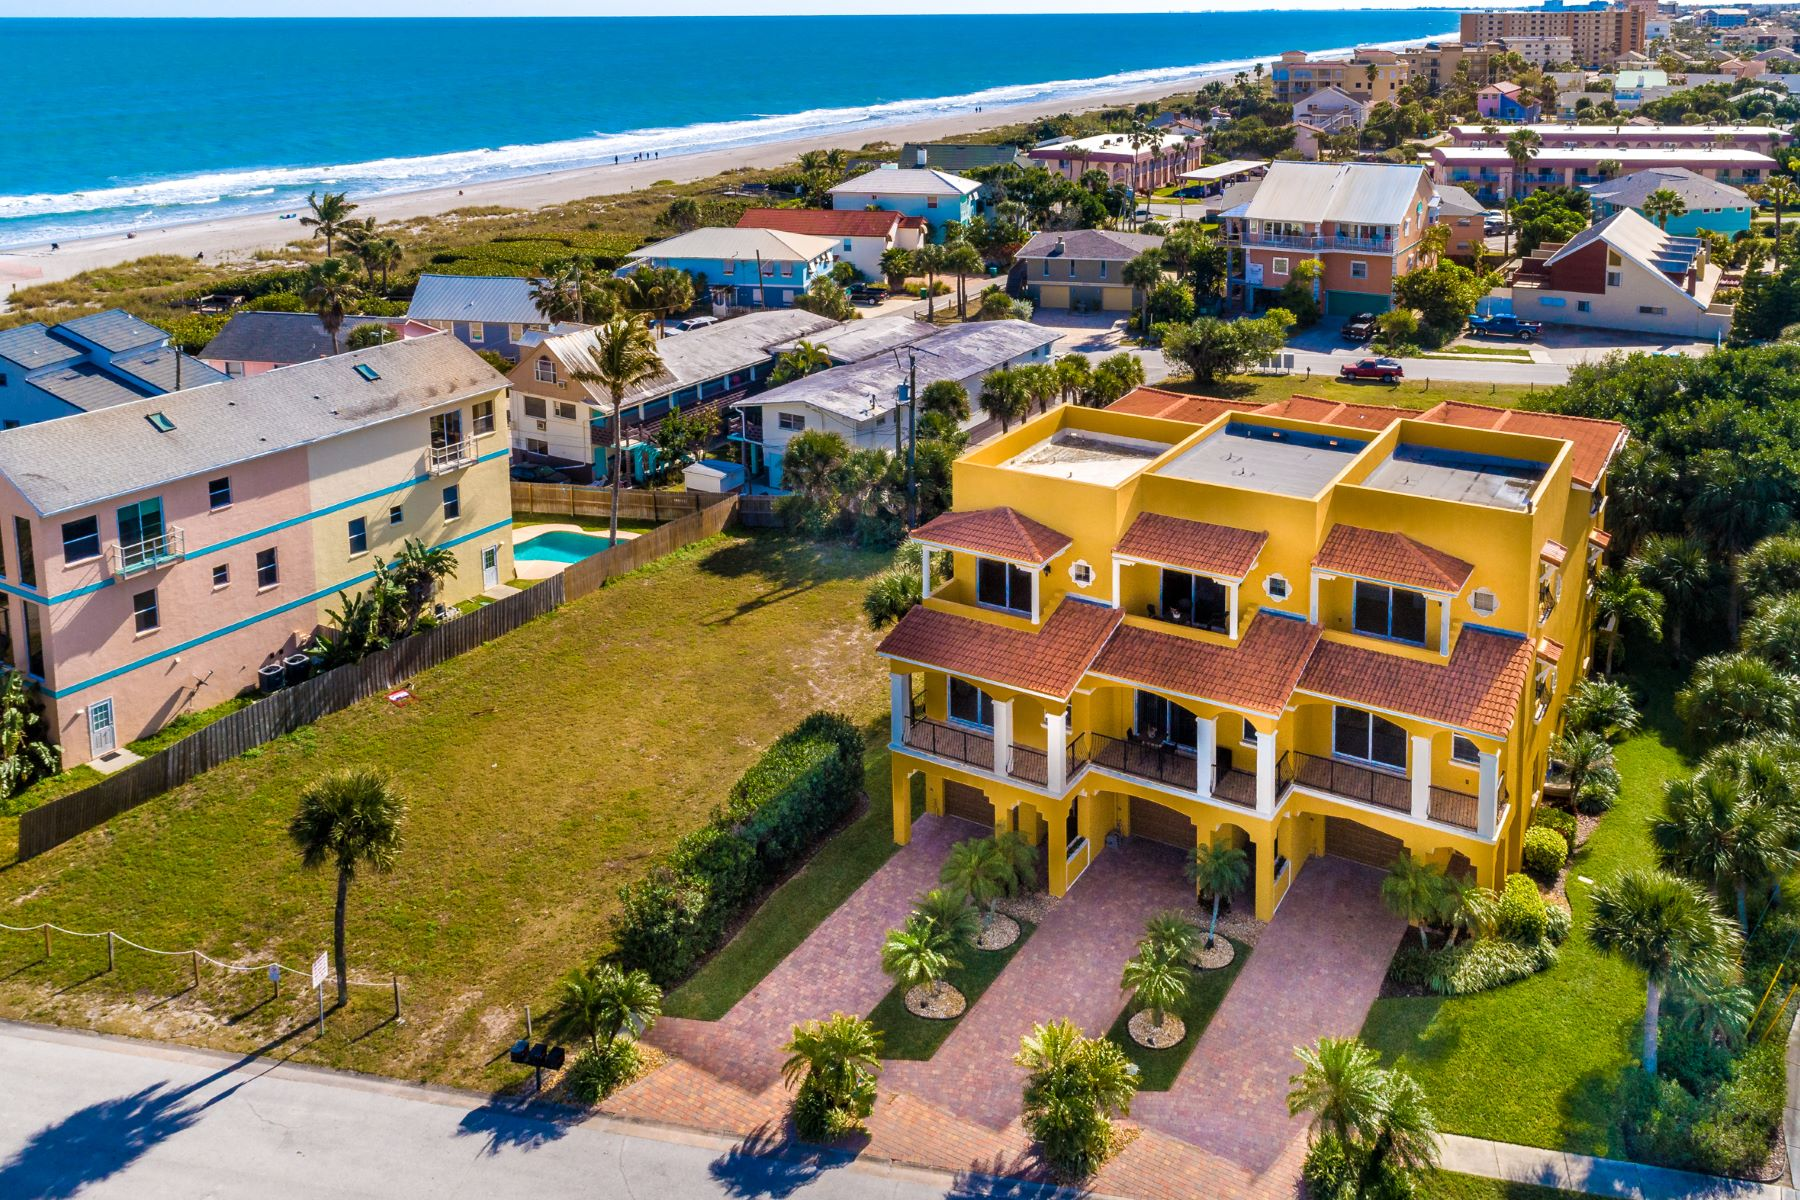 townhouses for Sale at Beautiful, Luxury Townhouse with Sensational Ocean Views 603 Washington Avenue 1 Cape Canaveral, Florida 32920 United States